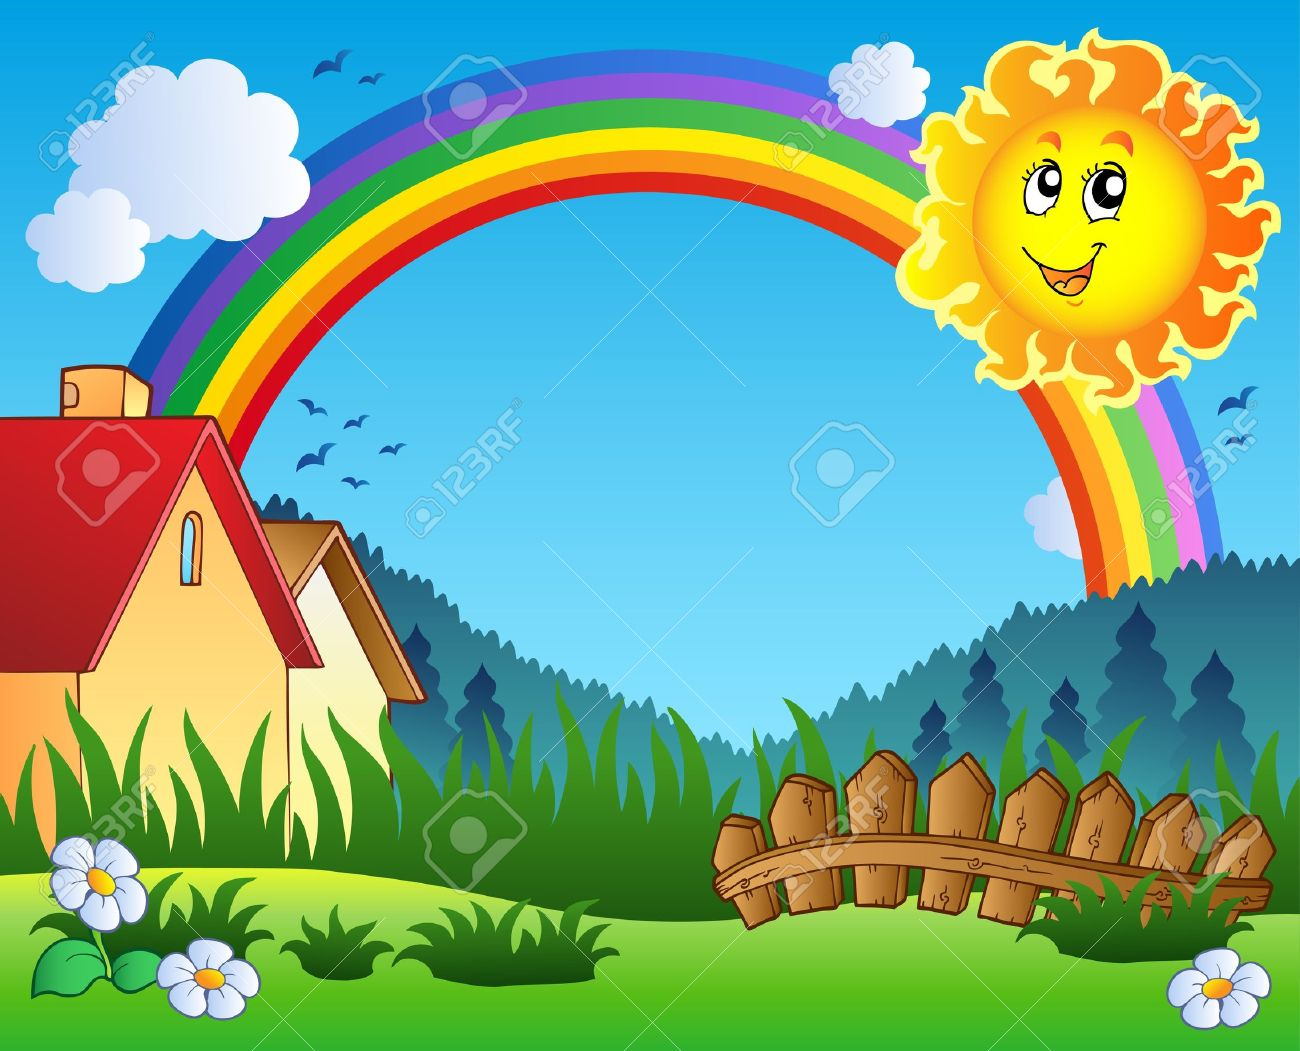 Rainbow scenery clipart.